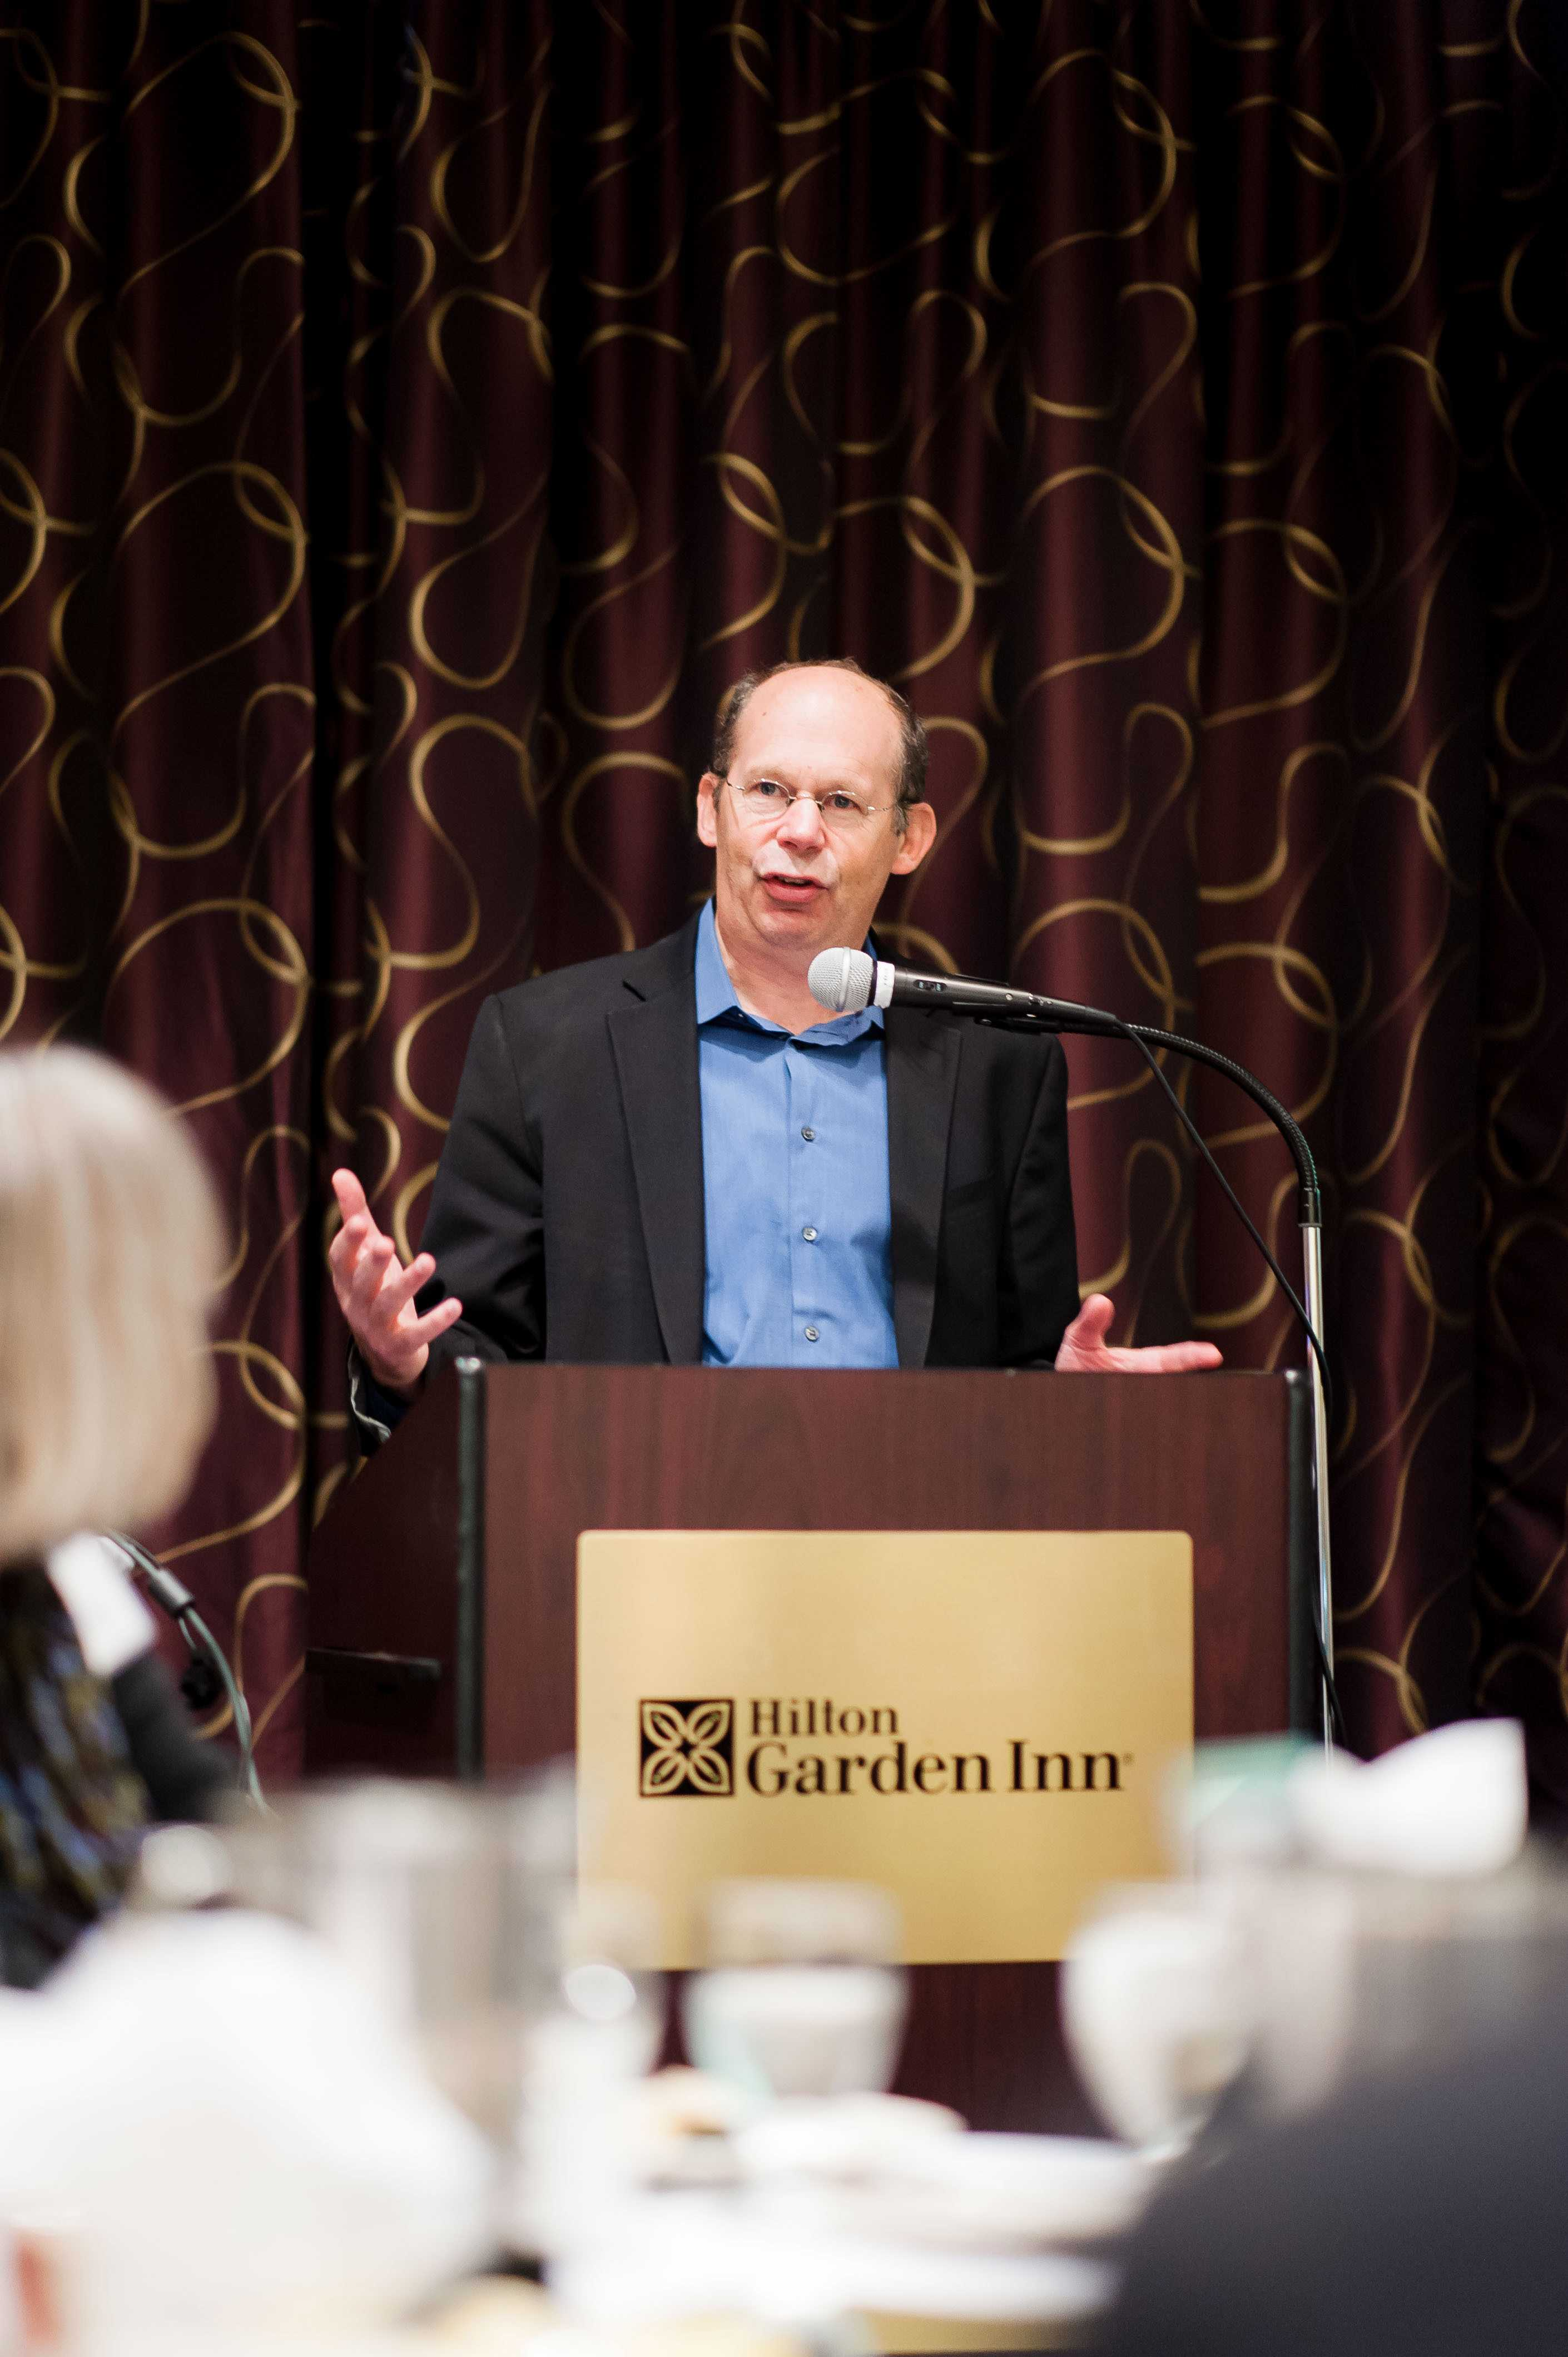 Kotlowitz spoke at the Hilton Garden Inn on Wednesday about youth homelessness. An award-winning journalist, Kotlowitz is also a writer-in-residence at Northwestern.